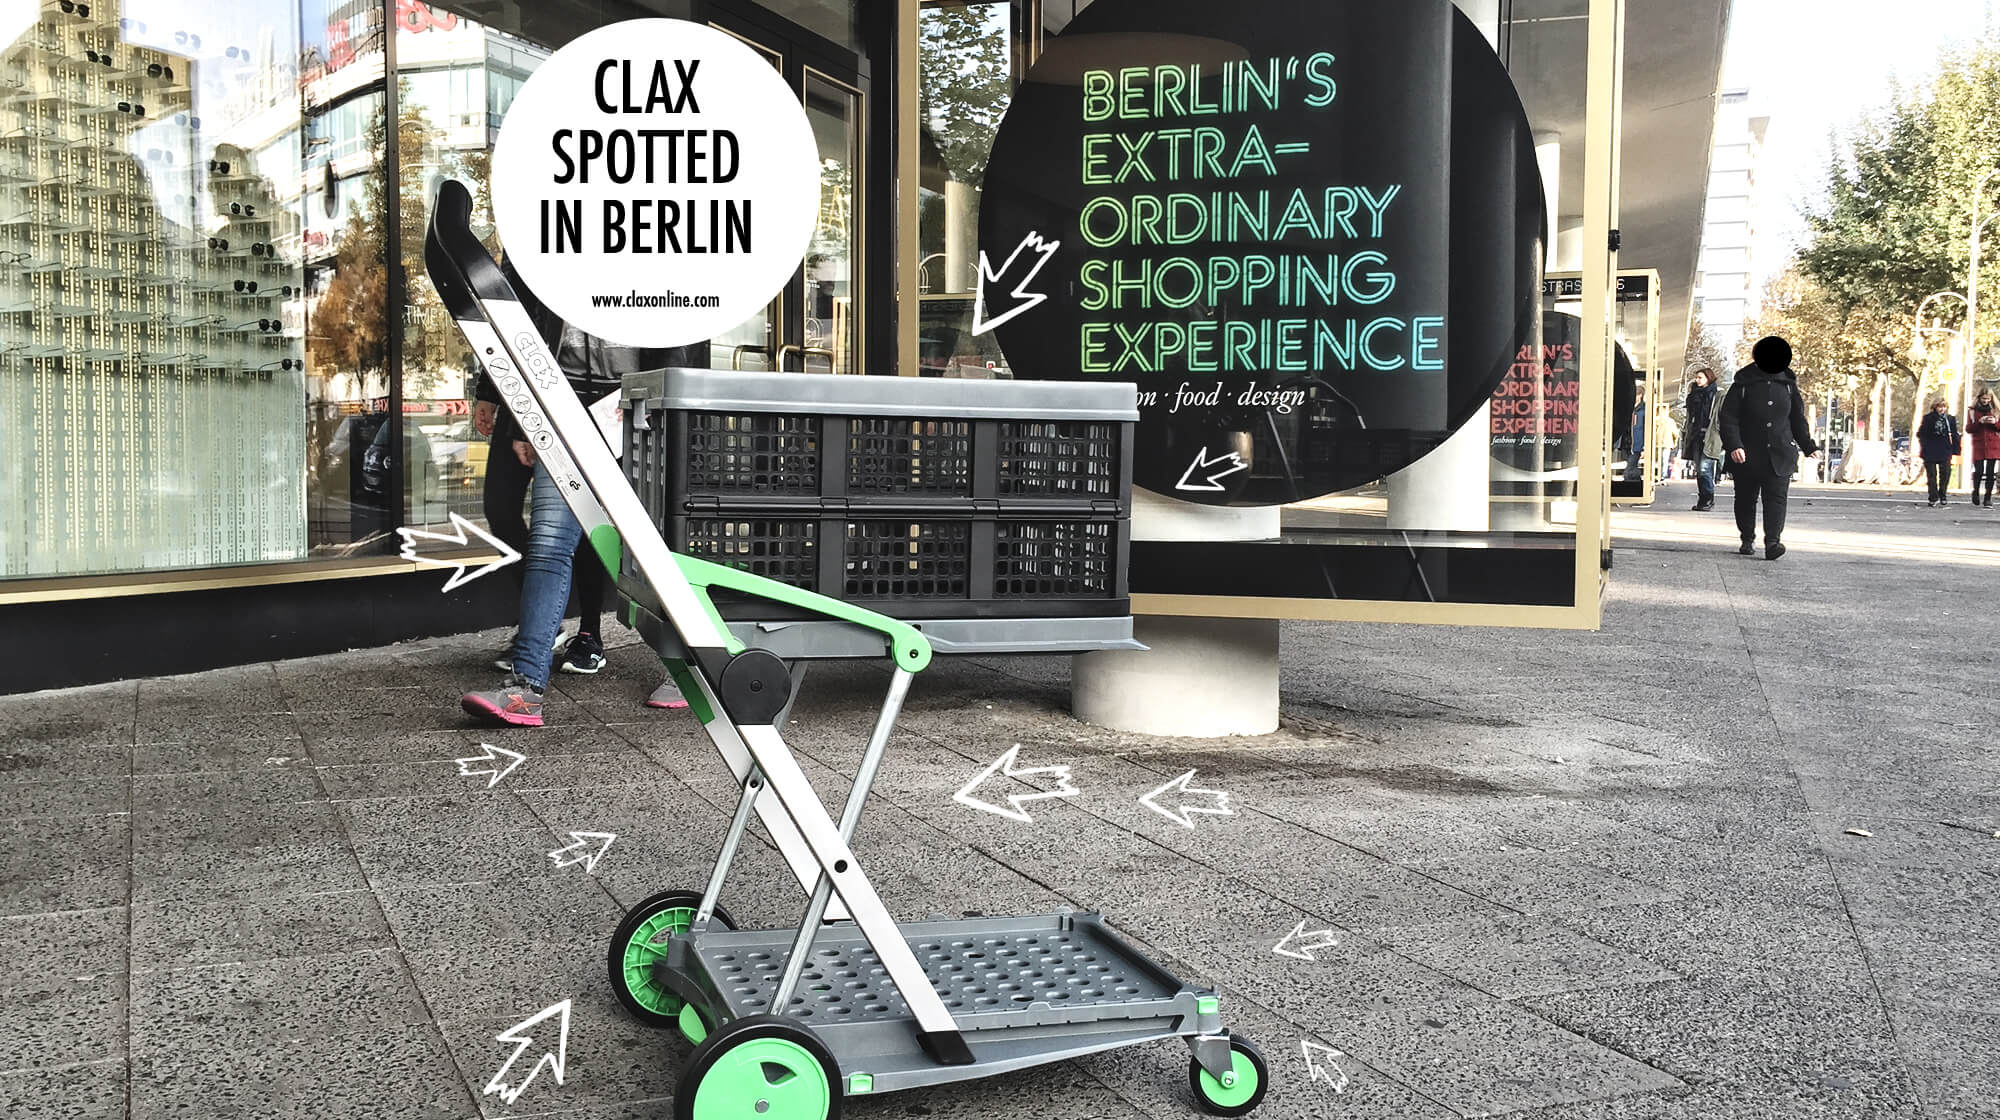 6_clax_spotted_in_berlin